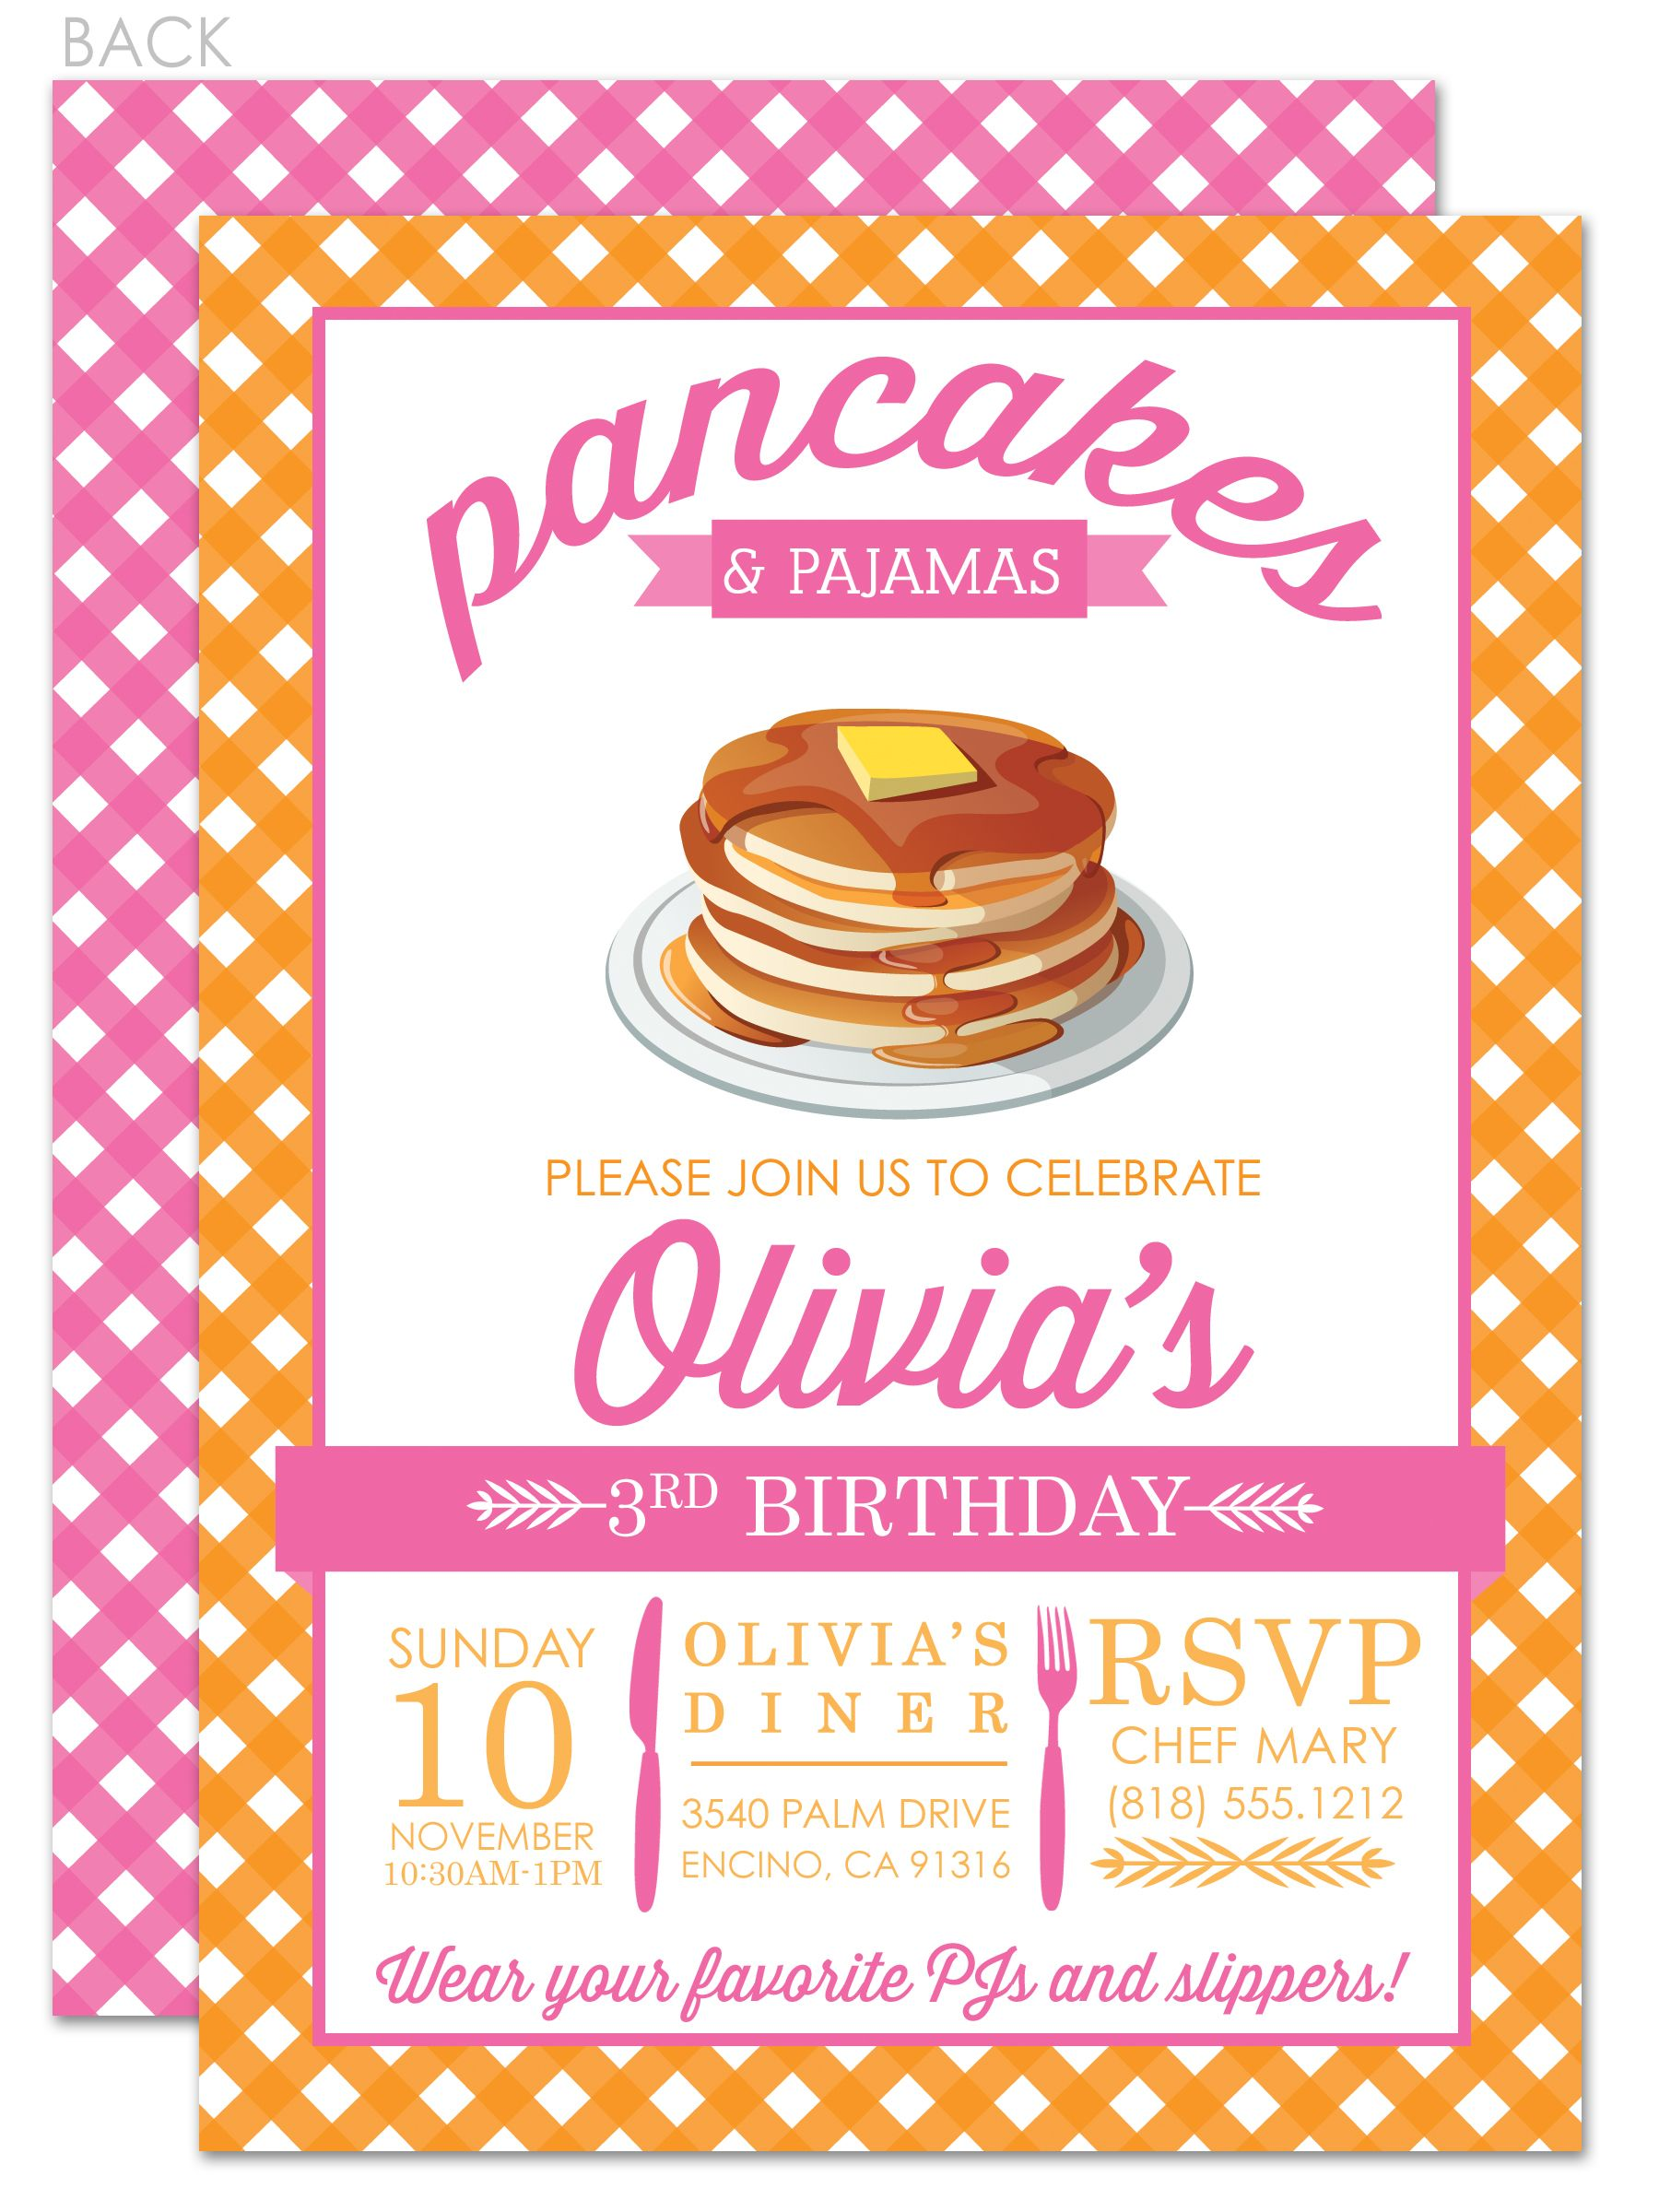 pancakes and pajamas birthday invitation  pyjamas pancakes and